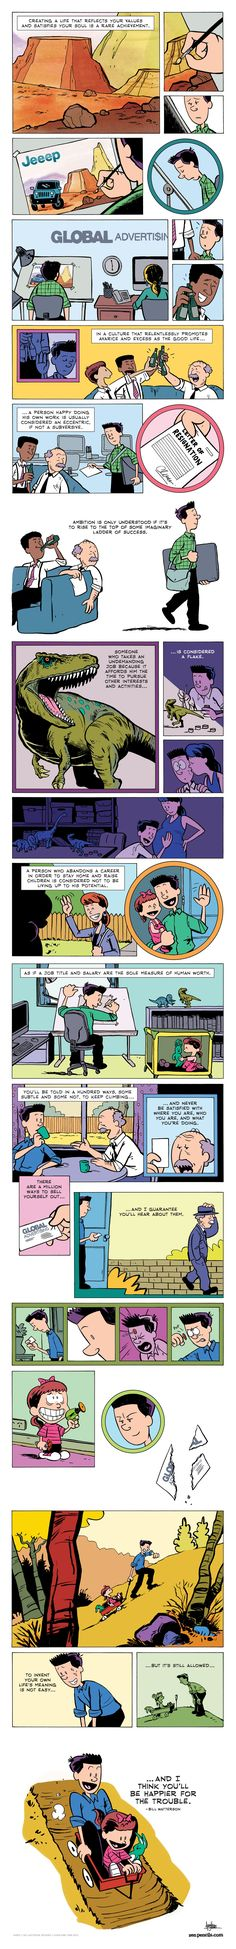 BILL WATTERSON: A cartoonist's advice